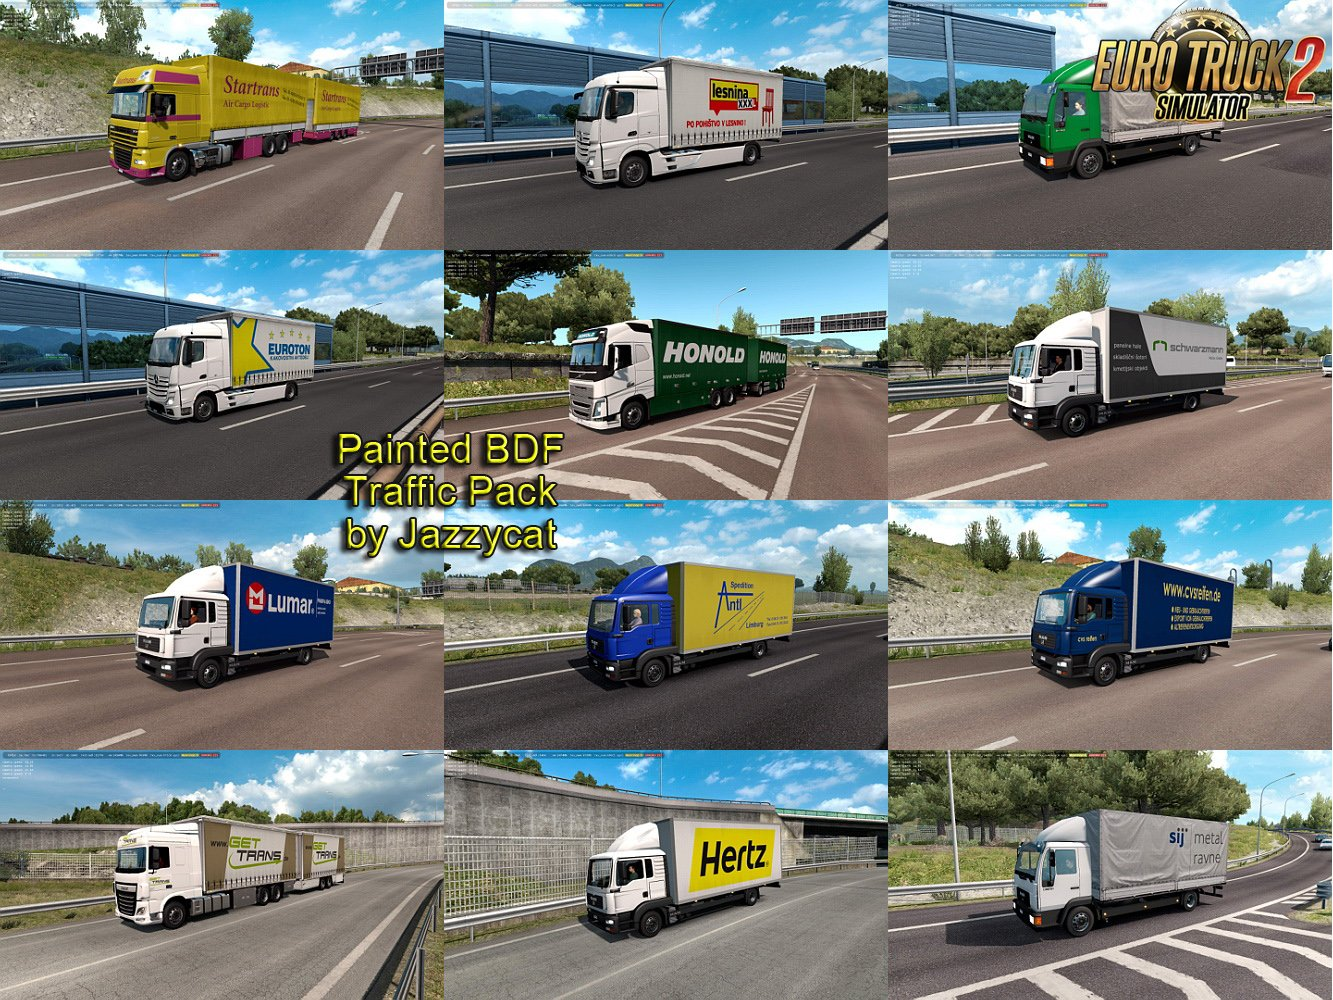 Painted BDF Traffic Pack v4.5 by Jazzycat